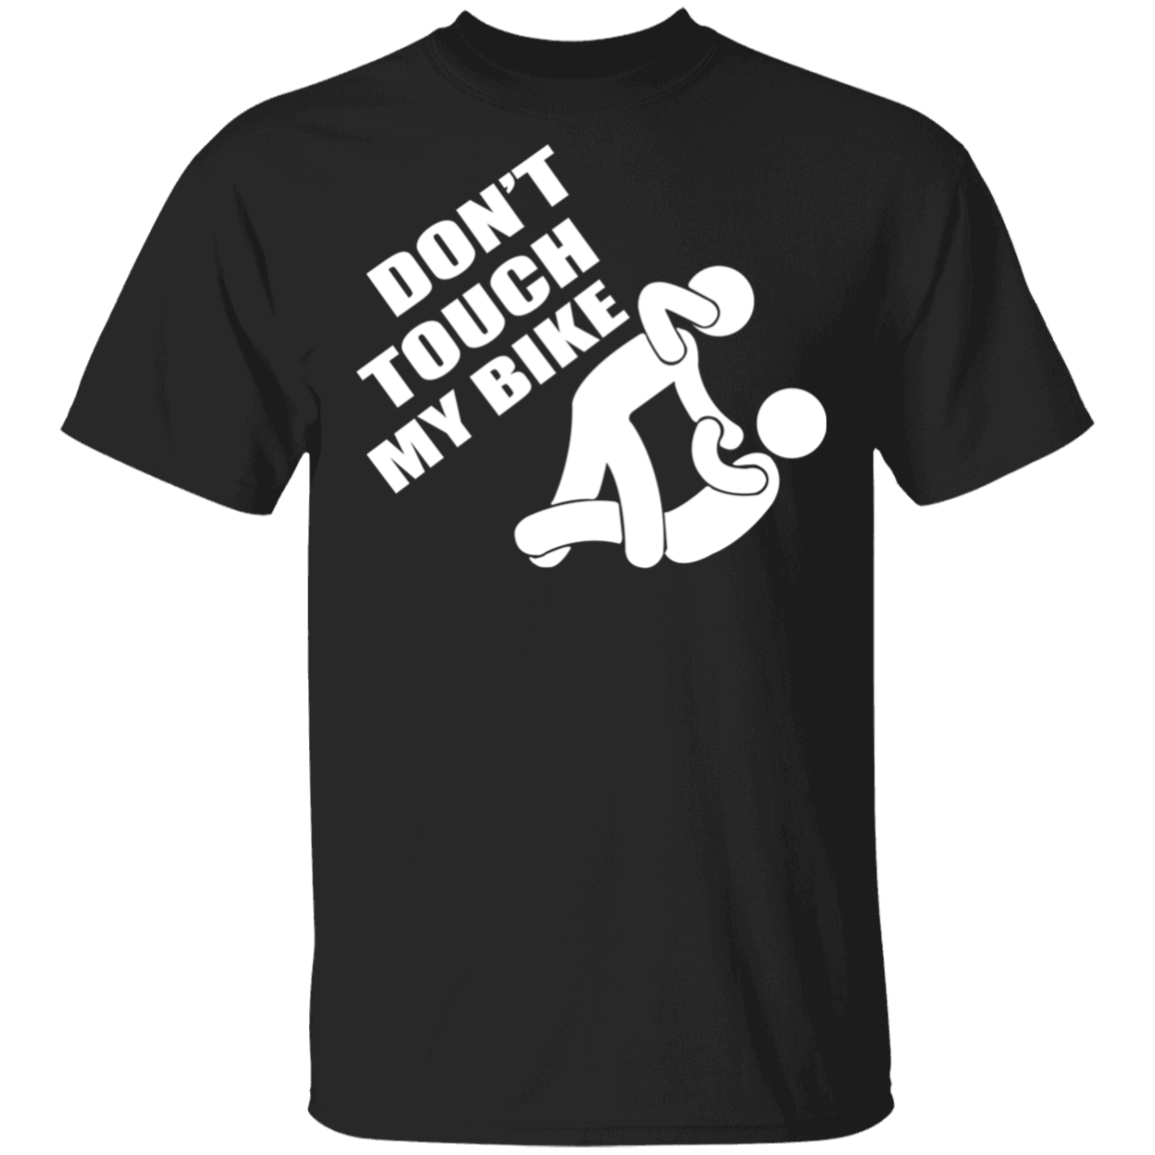 Don't Touch My Bike T-Shirt Funny Quote Shirt For Badass Biker Gift For Motorcycle Lover